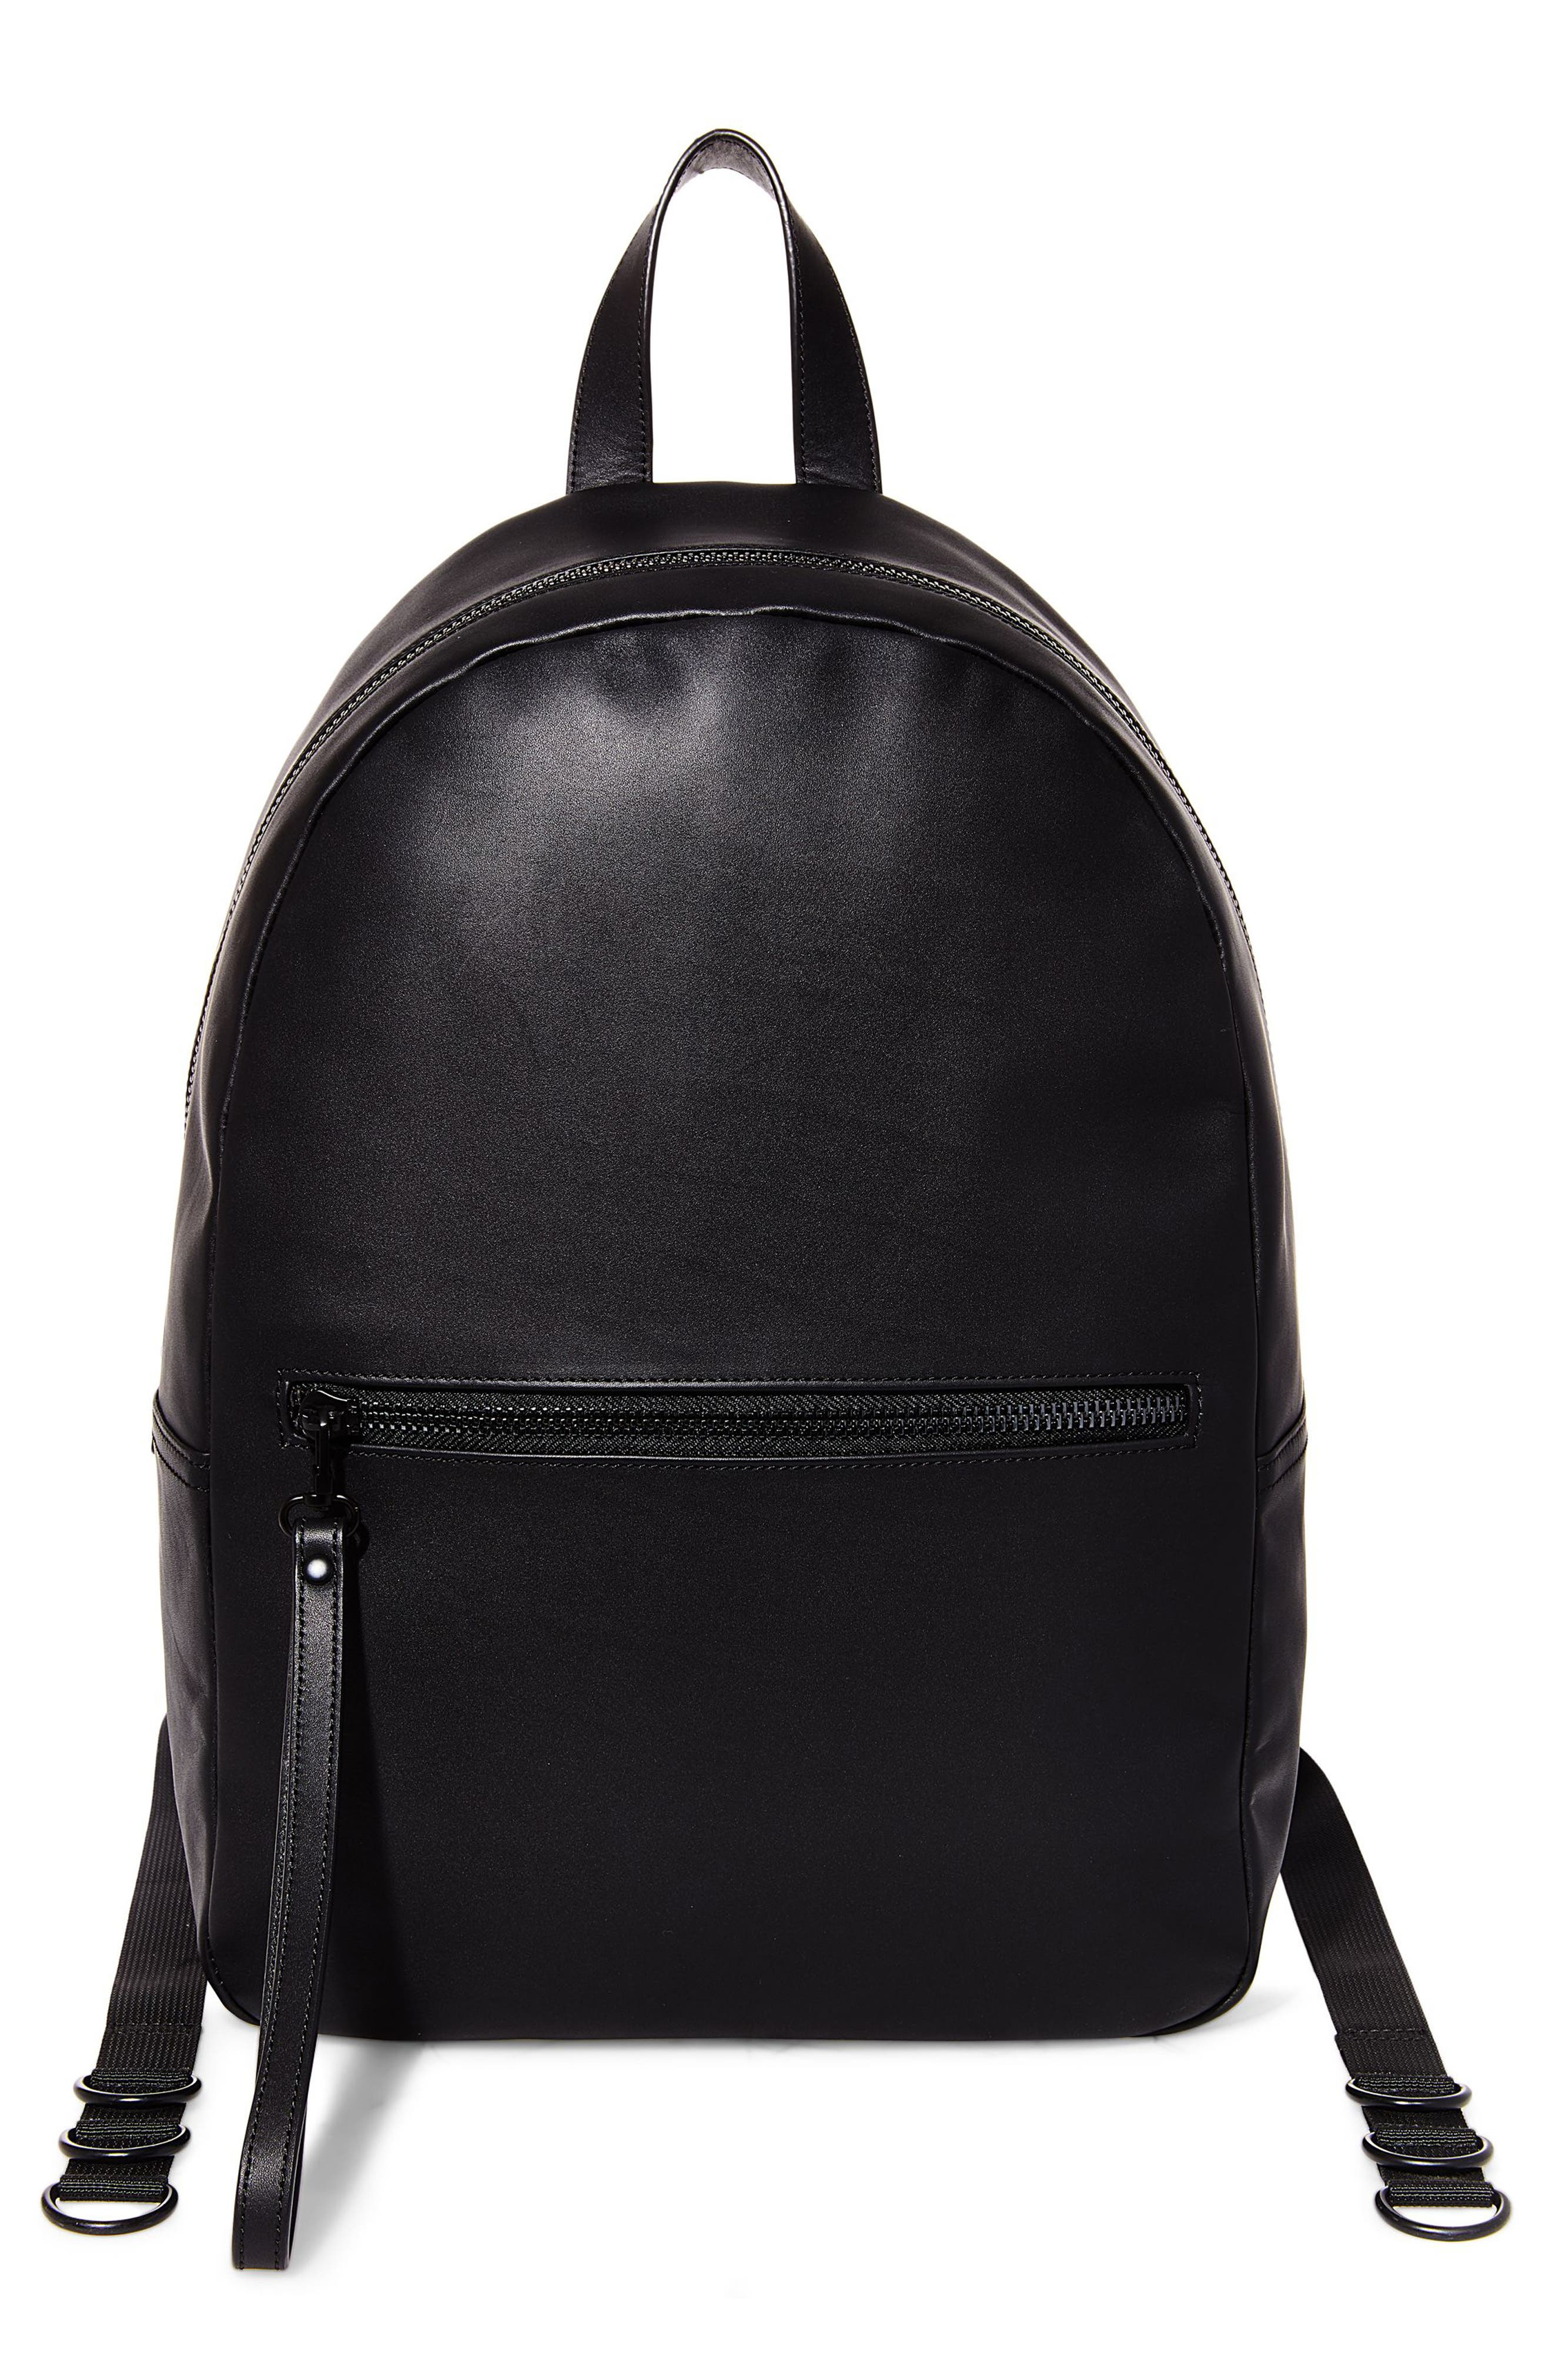 GQ x Steve Madden Leather Backpack,                             Main thumbnail 1, color,                             001